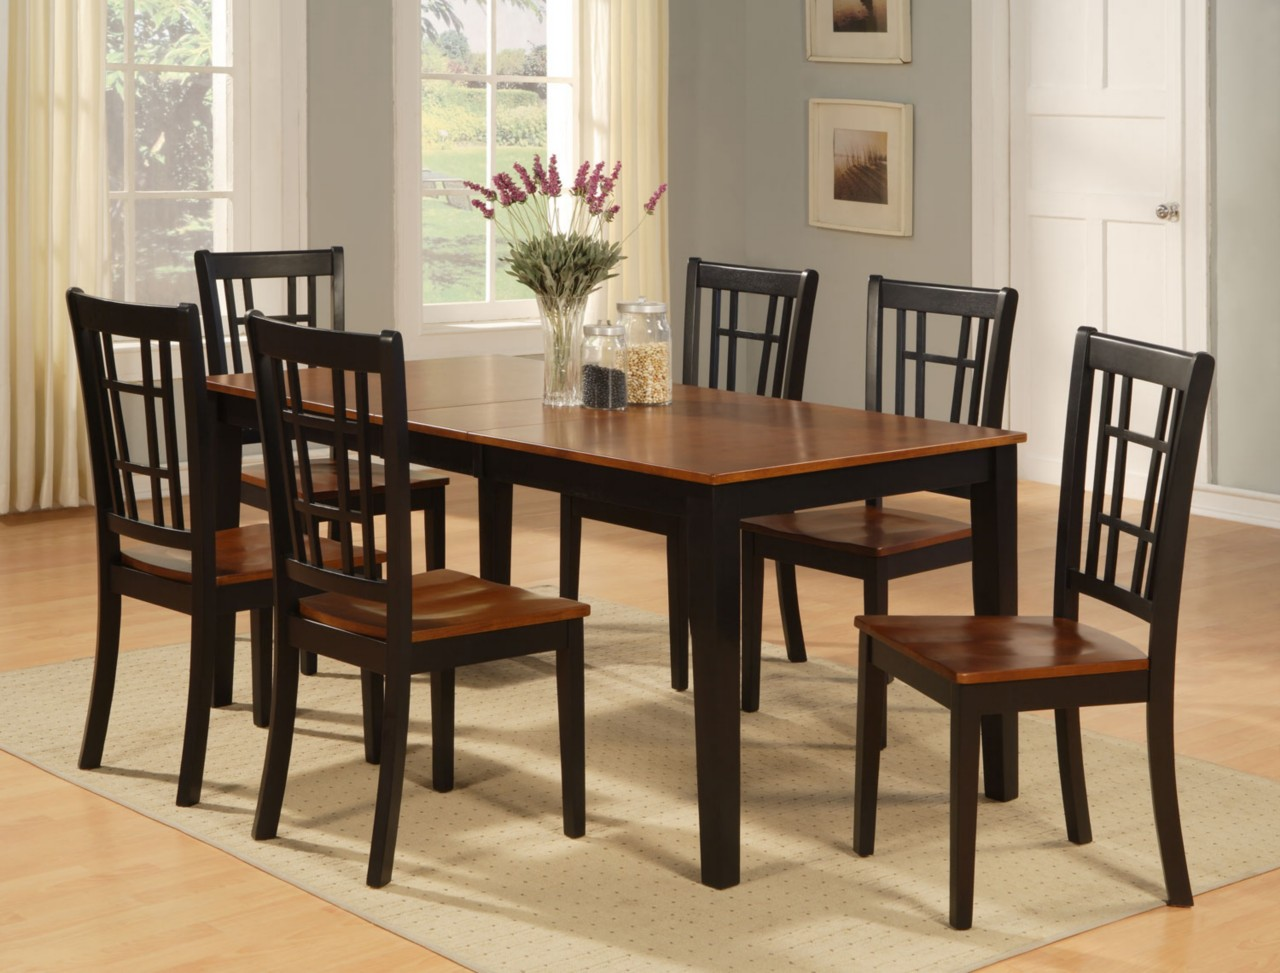 Dinette kitchen dining room set 7pc table and 6 chairs ebay for Kitchen dinette sets